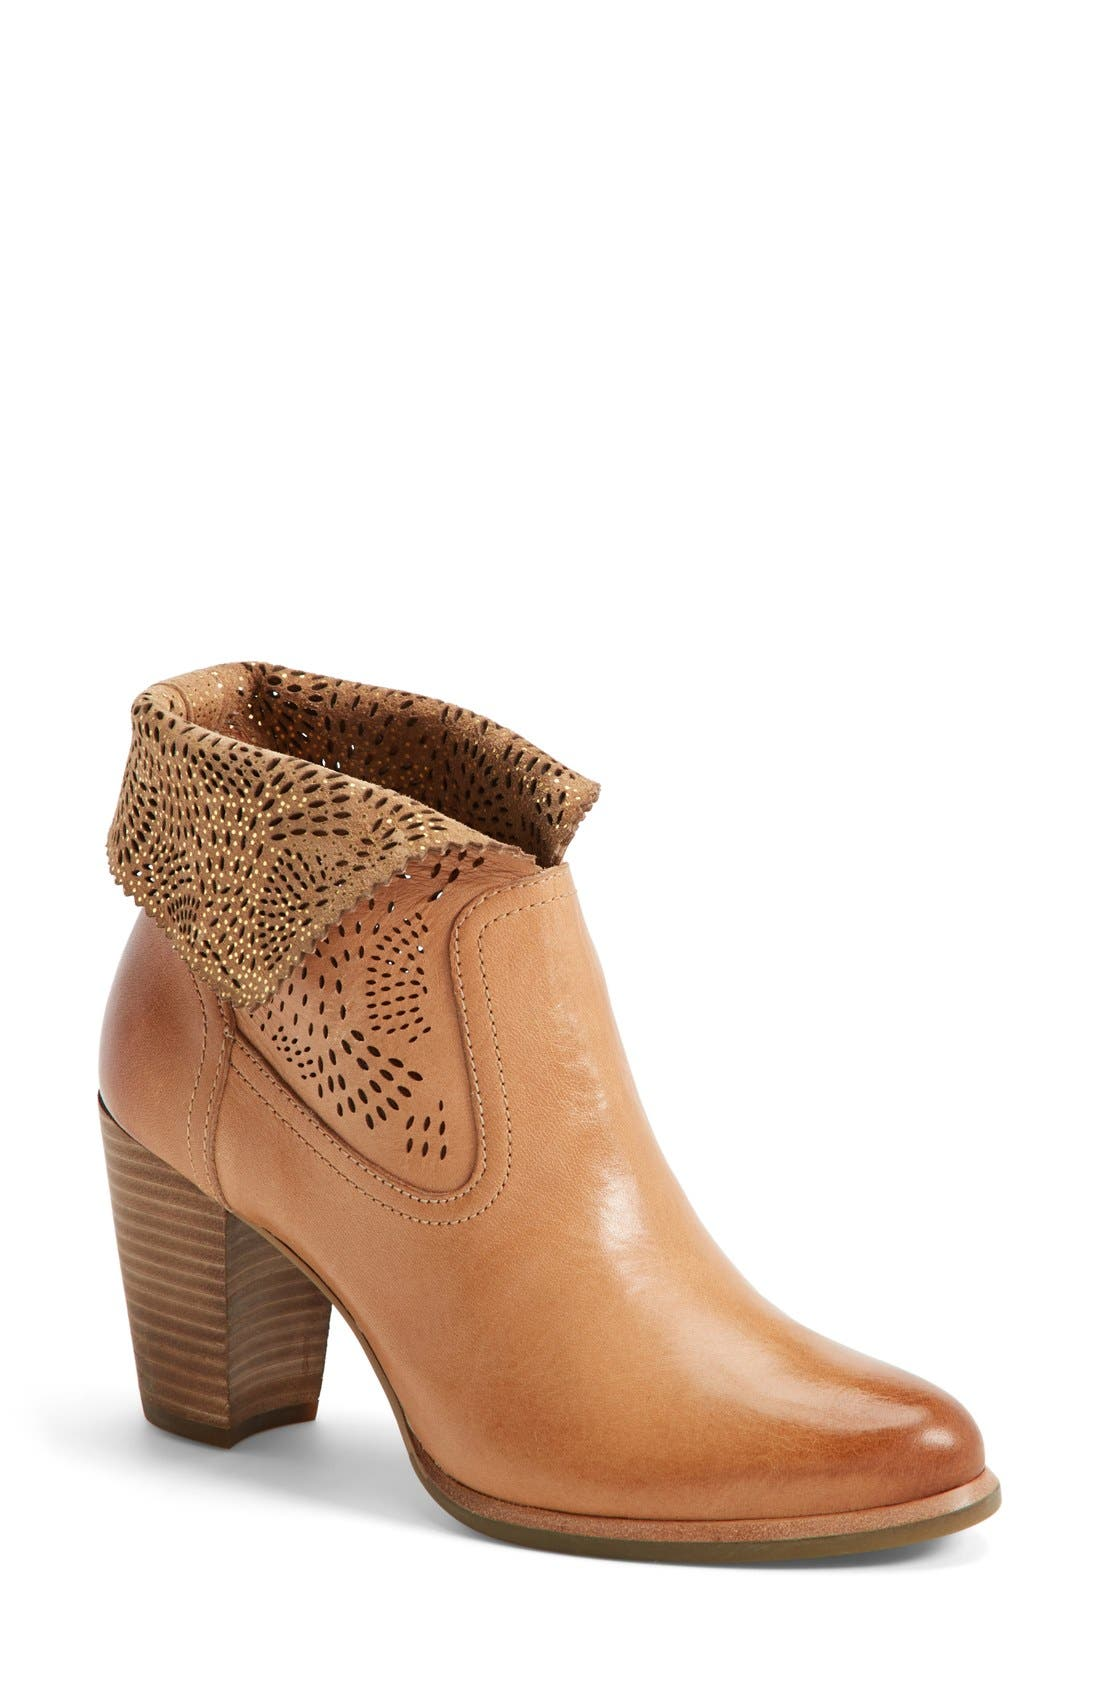 Alternate Image 1 Selected - UGG® Australia 'Thames Seaweed' Perforated Bootie (Women)